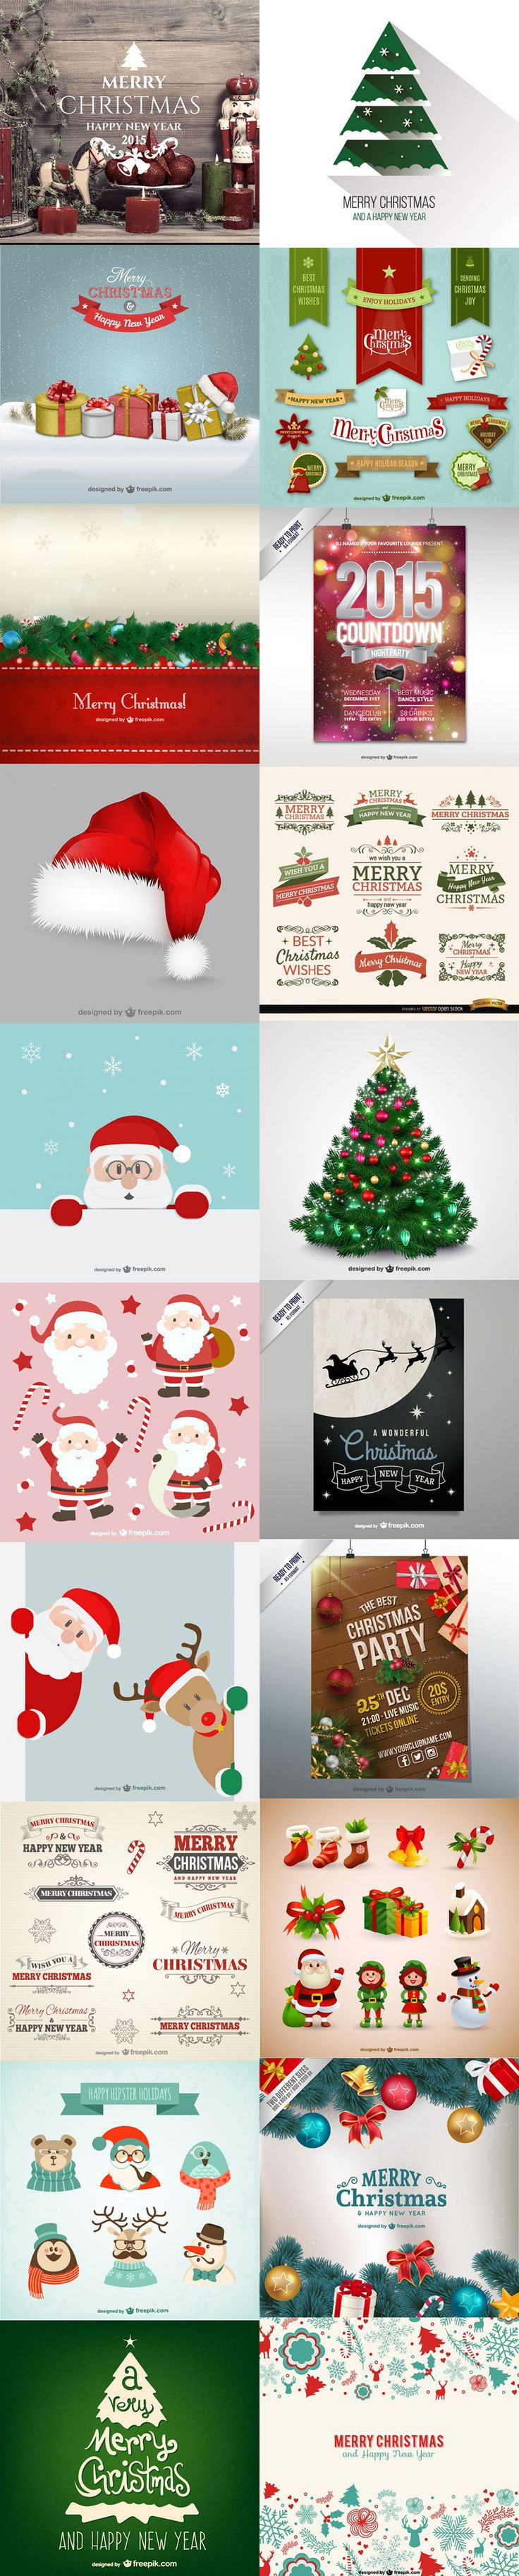 Free and Best Christmas Vector vector resources  Christmas  from the storeroom @ POTW